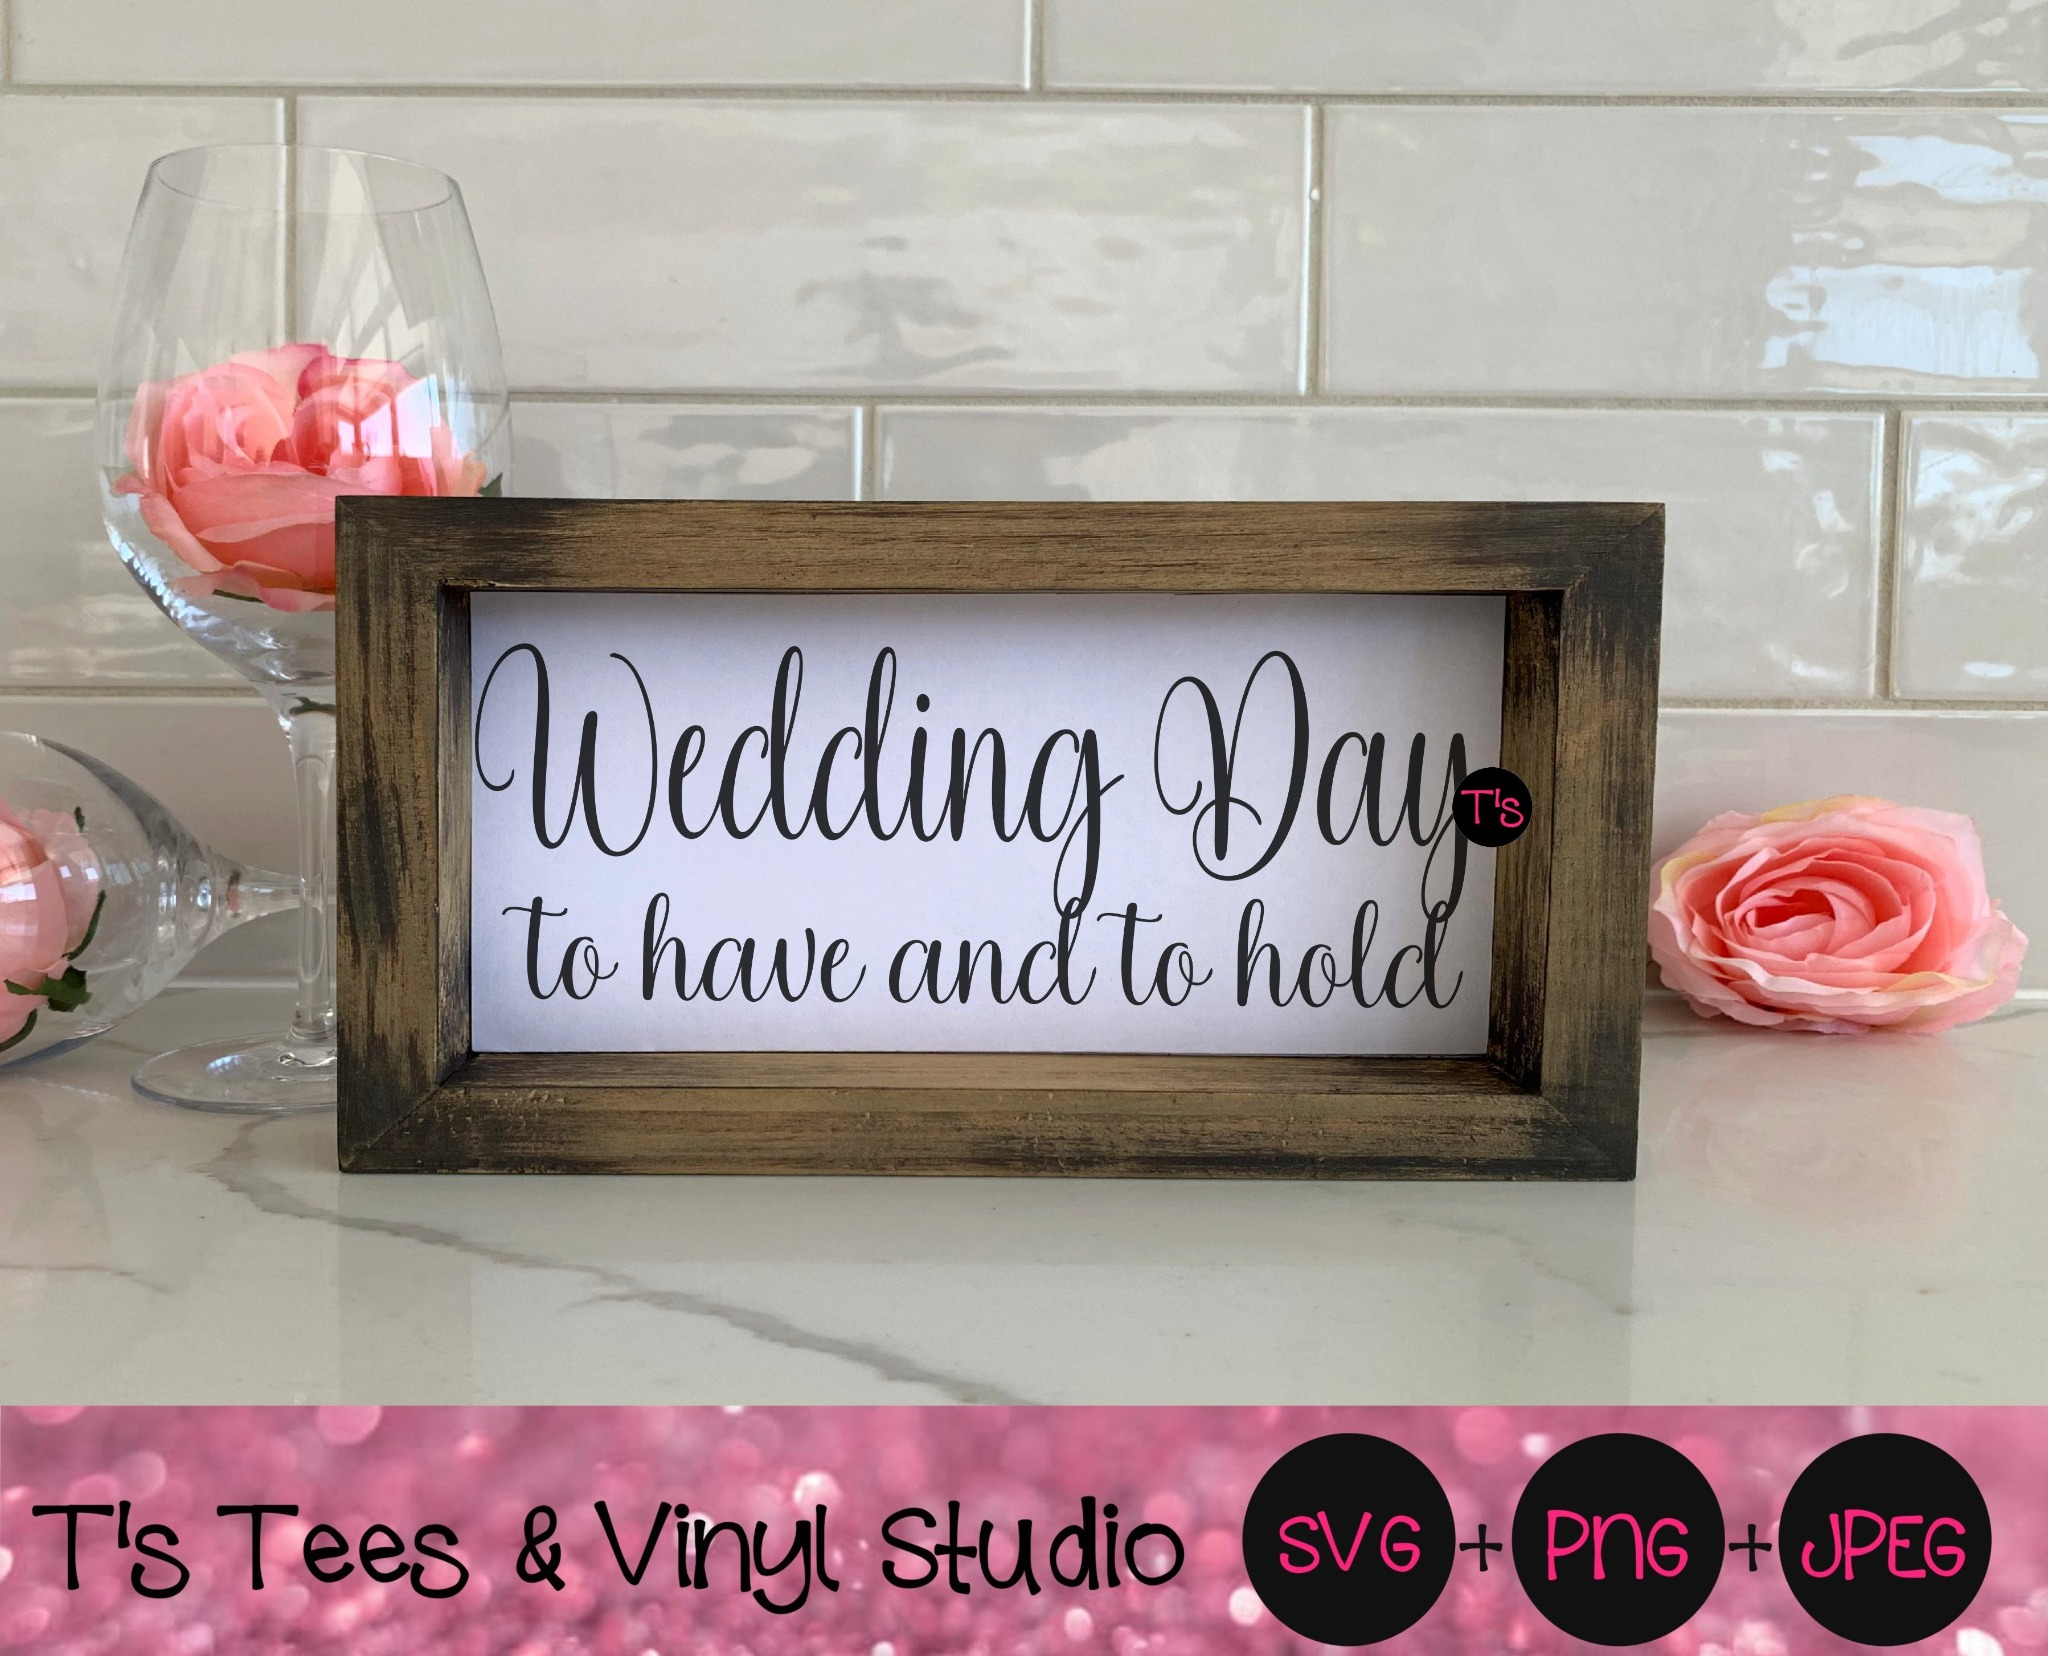 Wedding Svg, Wedding Day Svg, To Have And To Hold Svg, Wedding Png, Wedding Day Png, To Have And To